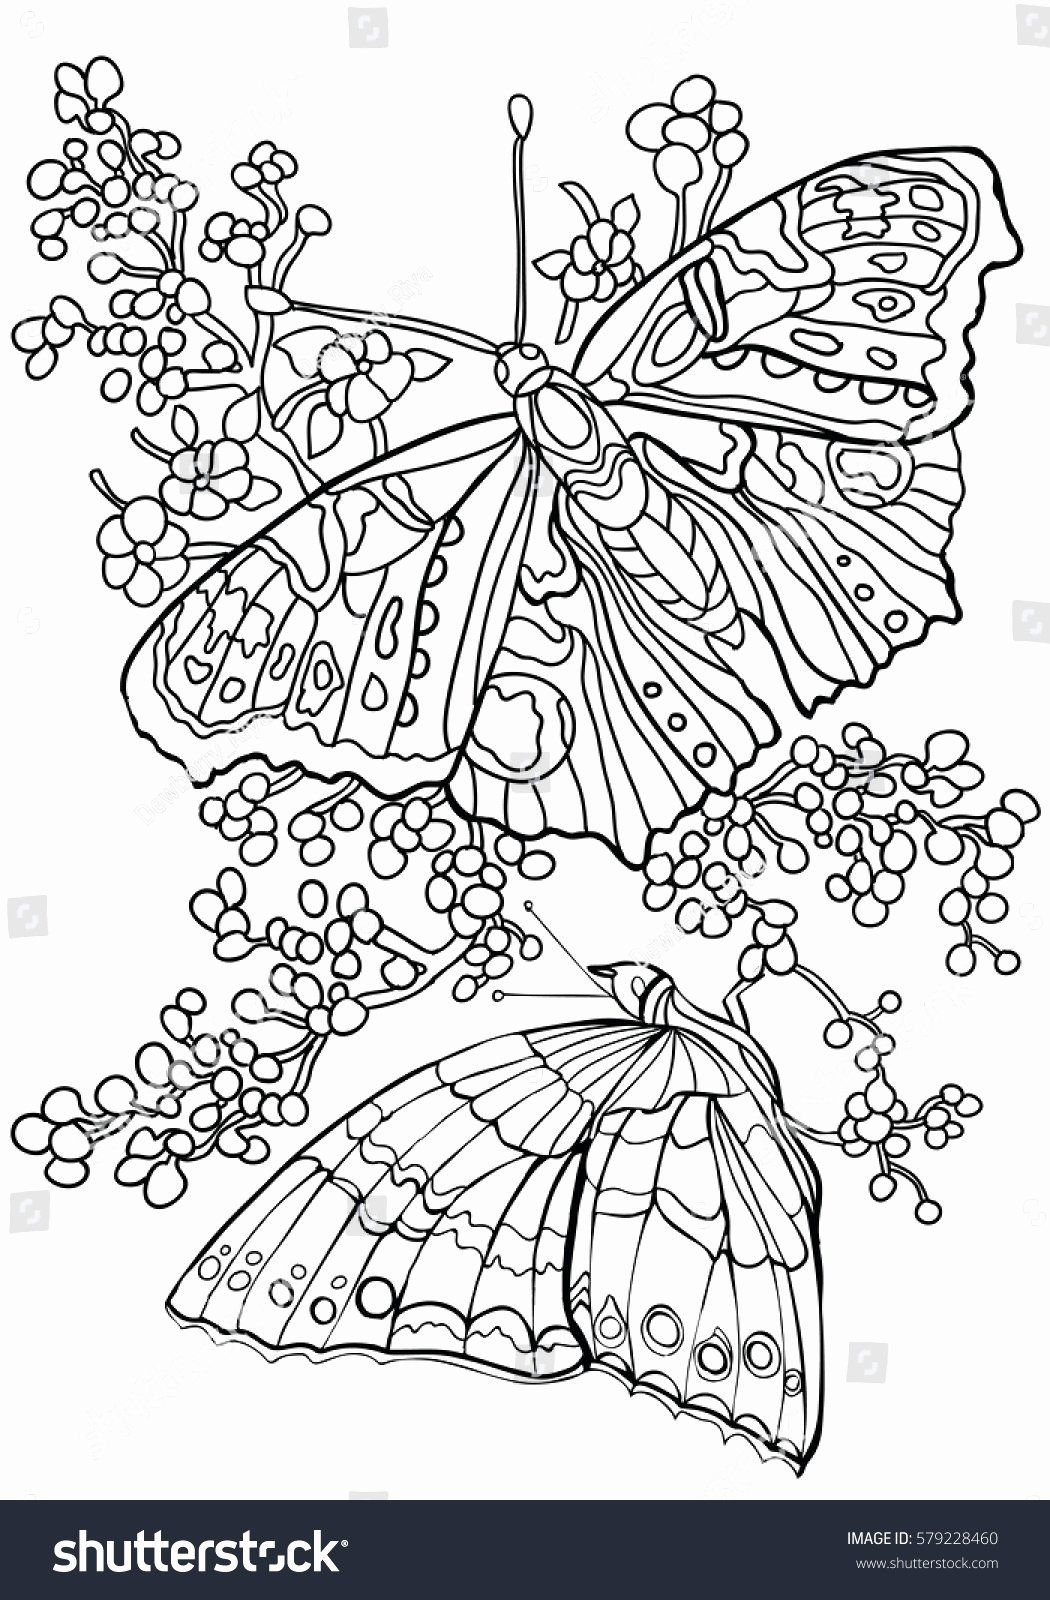 Trippy Coloring Book Pages Meetopia Coloring Pages Butterfly Coloring Page Unicorn Coloring Pages Geometric Coloring Pages